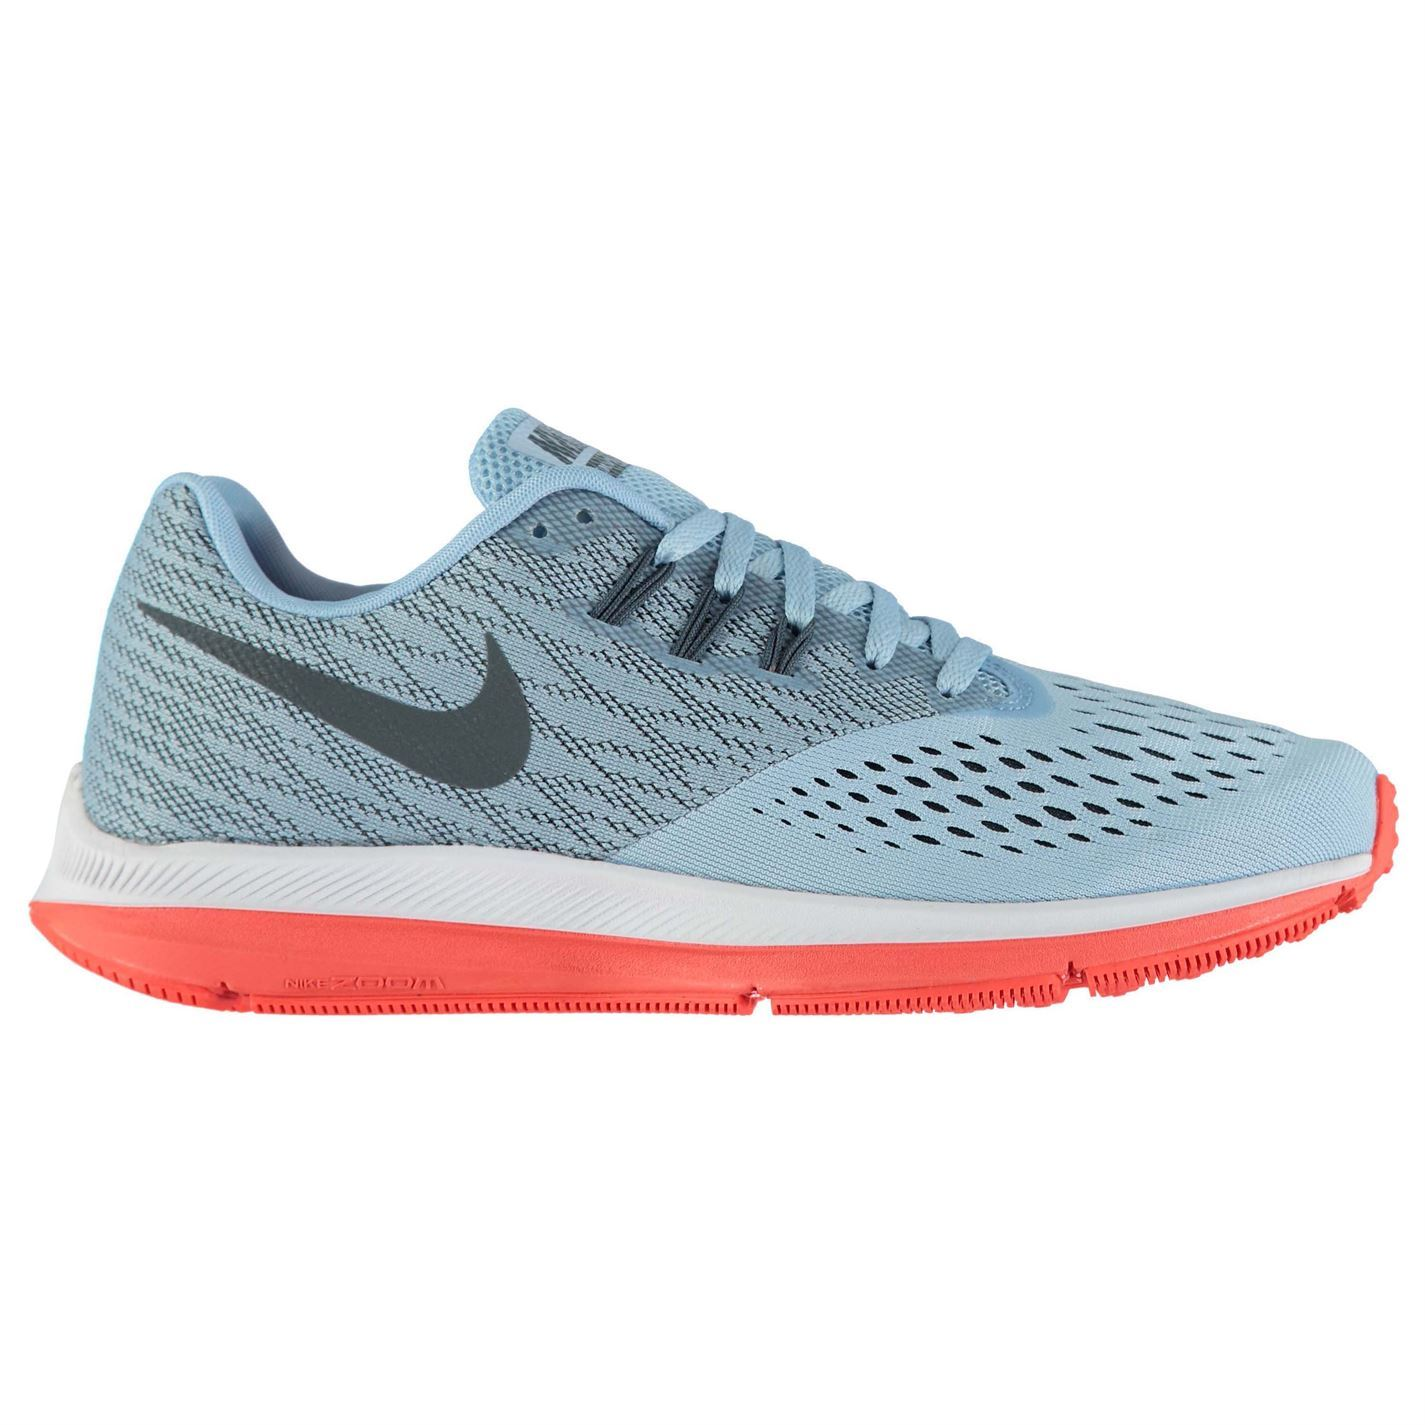 927f1ecd8f35 ... Nike Zoom Winflo 4 Running Shoes Mens Blue Grey Red Jogging Trainers  Sneakers ...